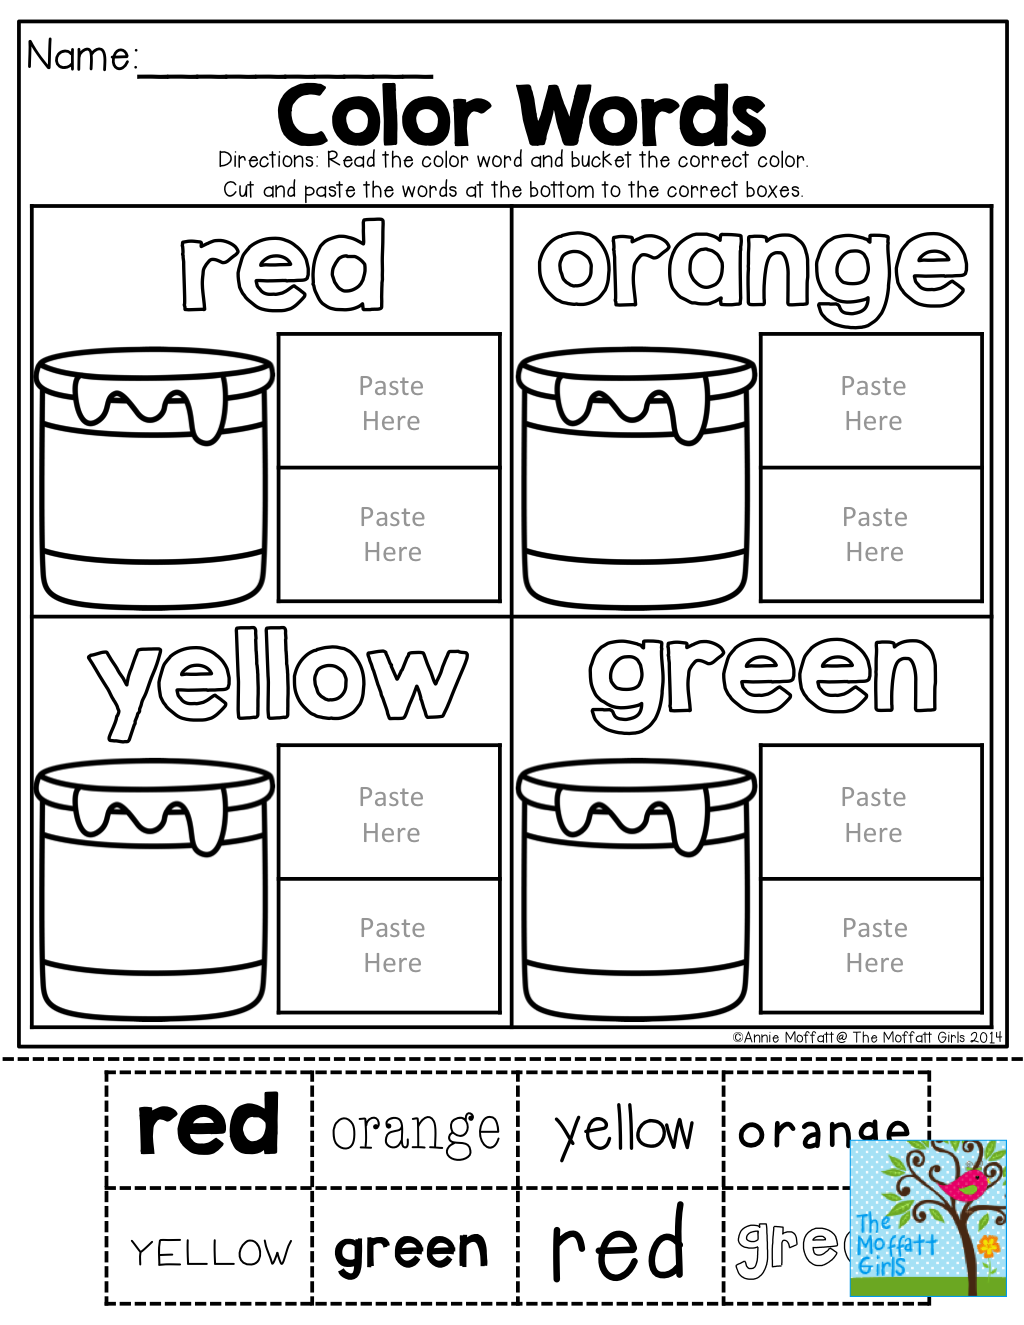 Color Words Cut And Paste Tons Of Back To School Printables